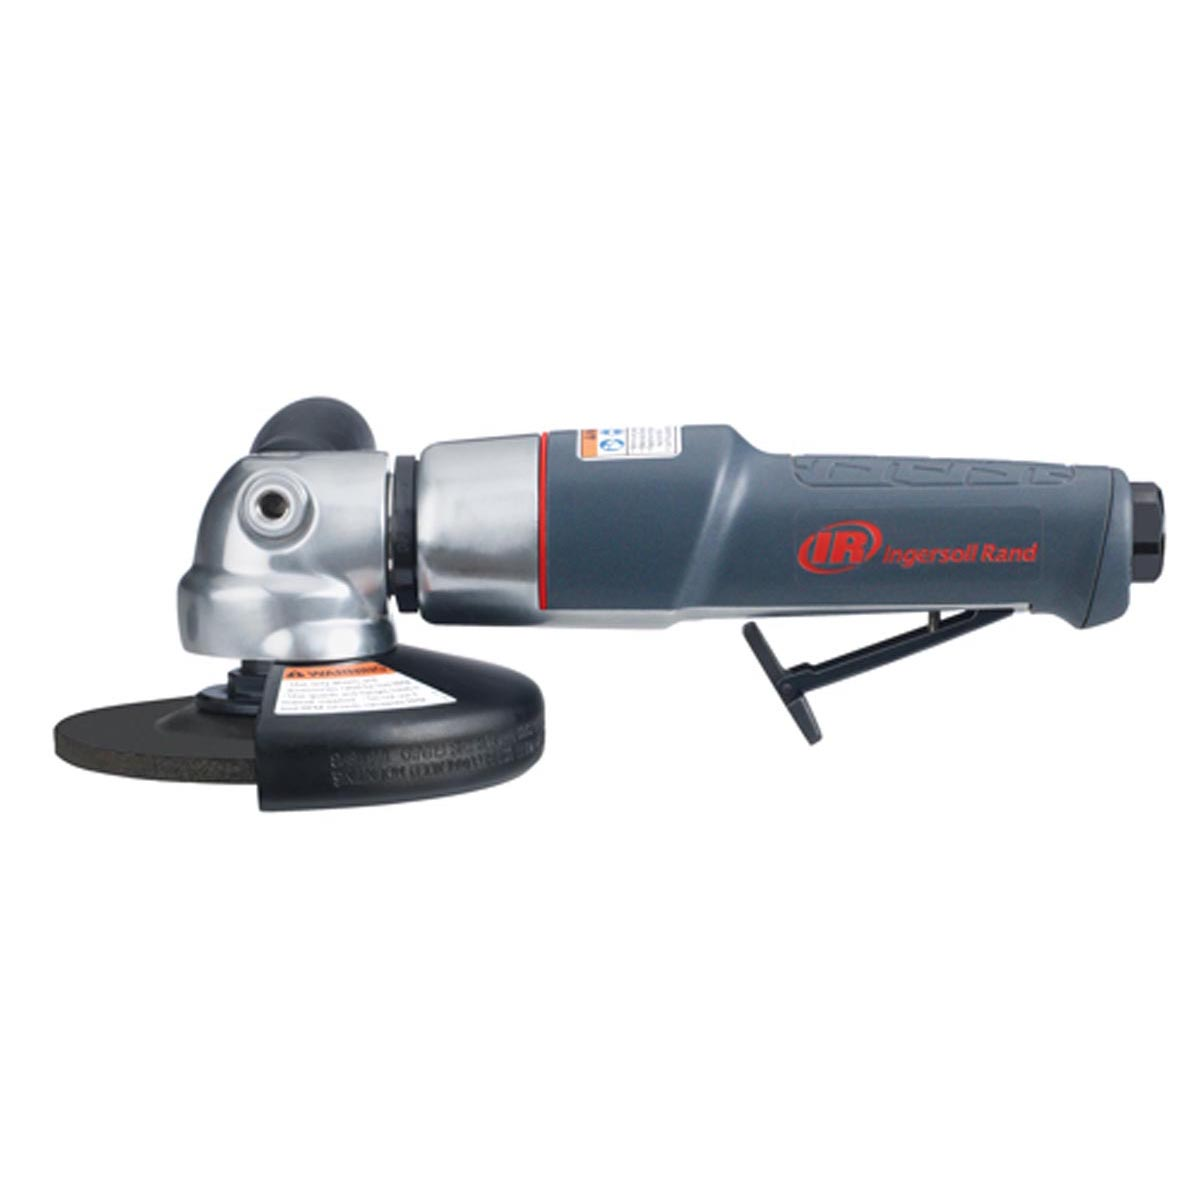 4.5-In Wheel Heavy Duty Air Angle Grinder - 12,000 RPM, 0.88-HP Motor, 3.5 Lbs